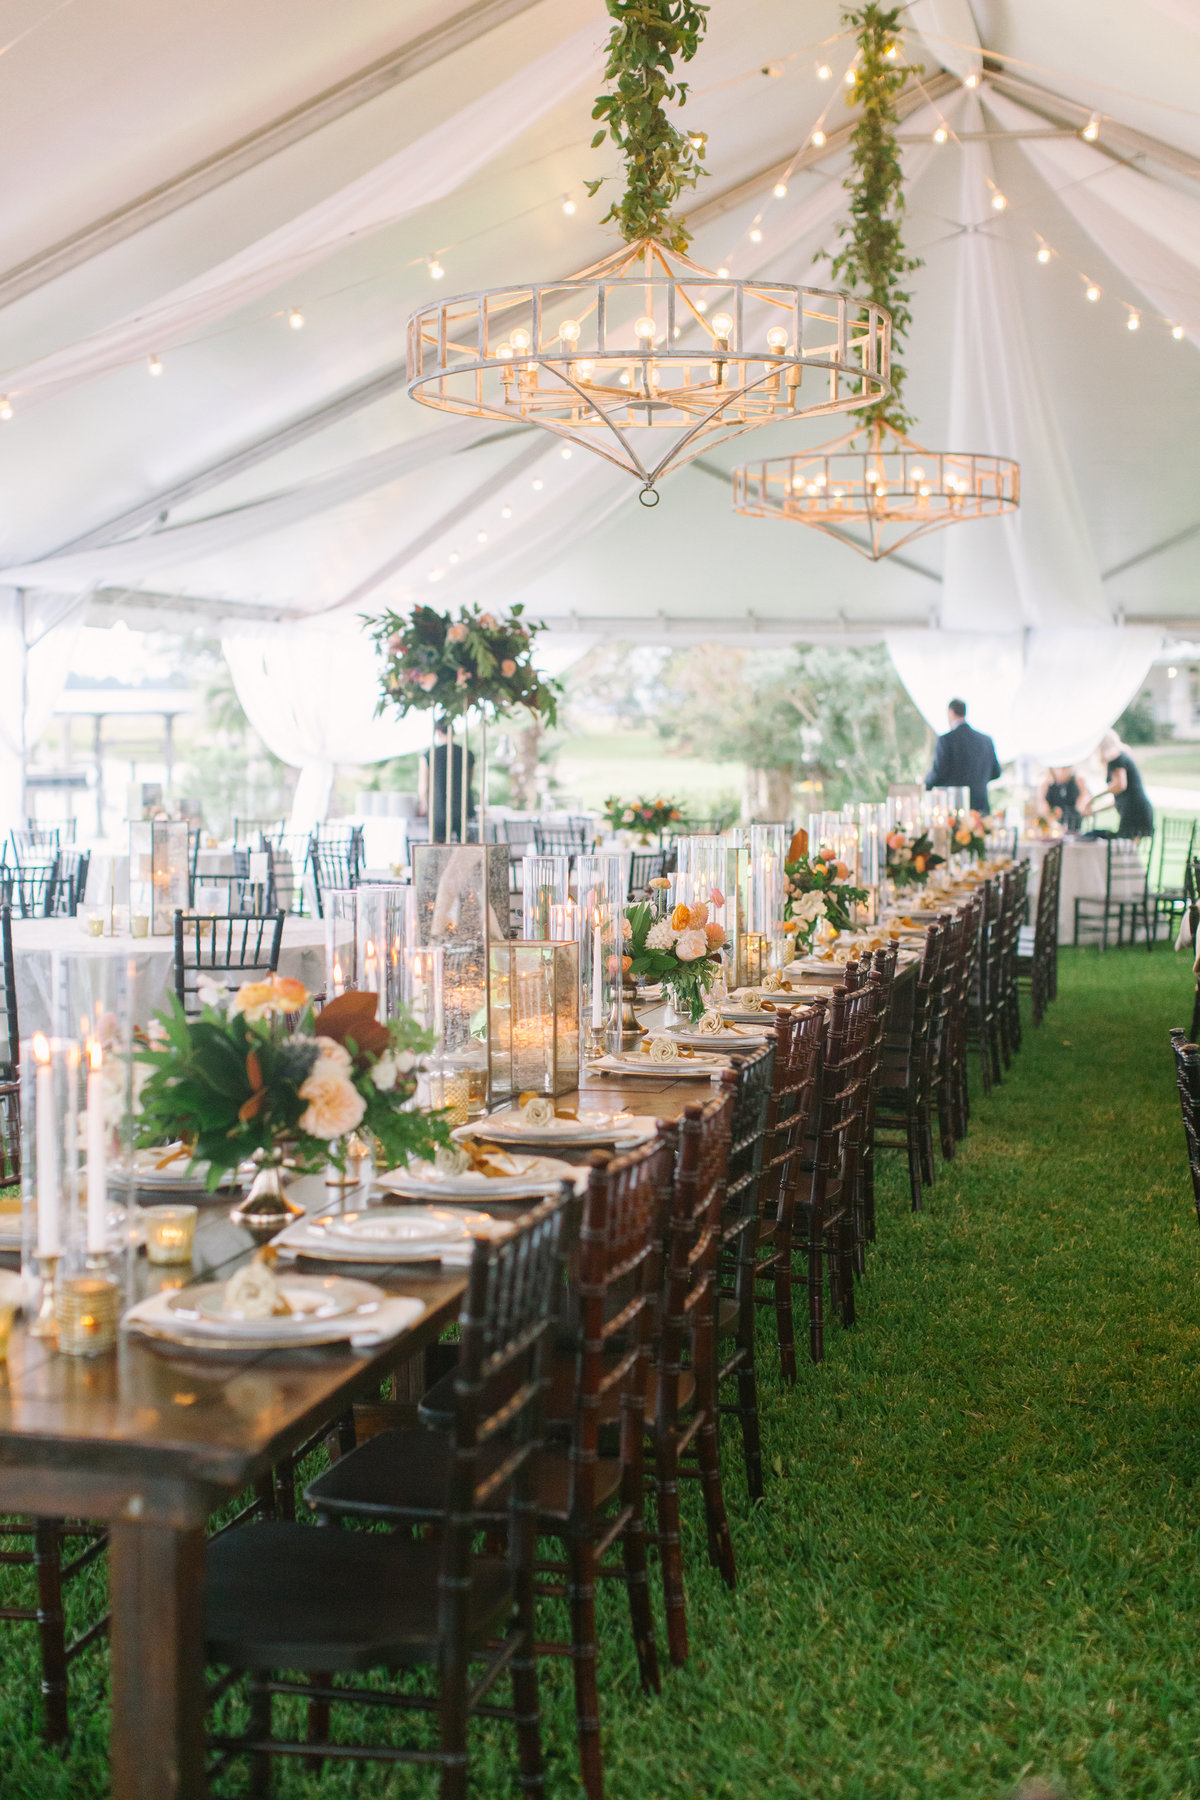 Southern Wedding Tent with Farm Tables Mahogany Chivari Chairs White Wash Chandelier Cafe Lighting Draping Candle Light